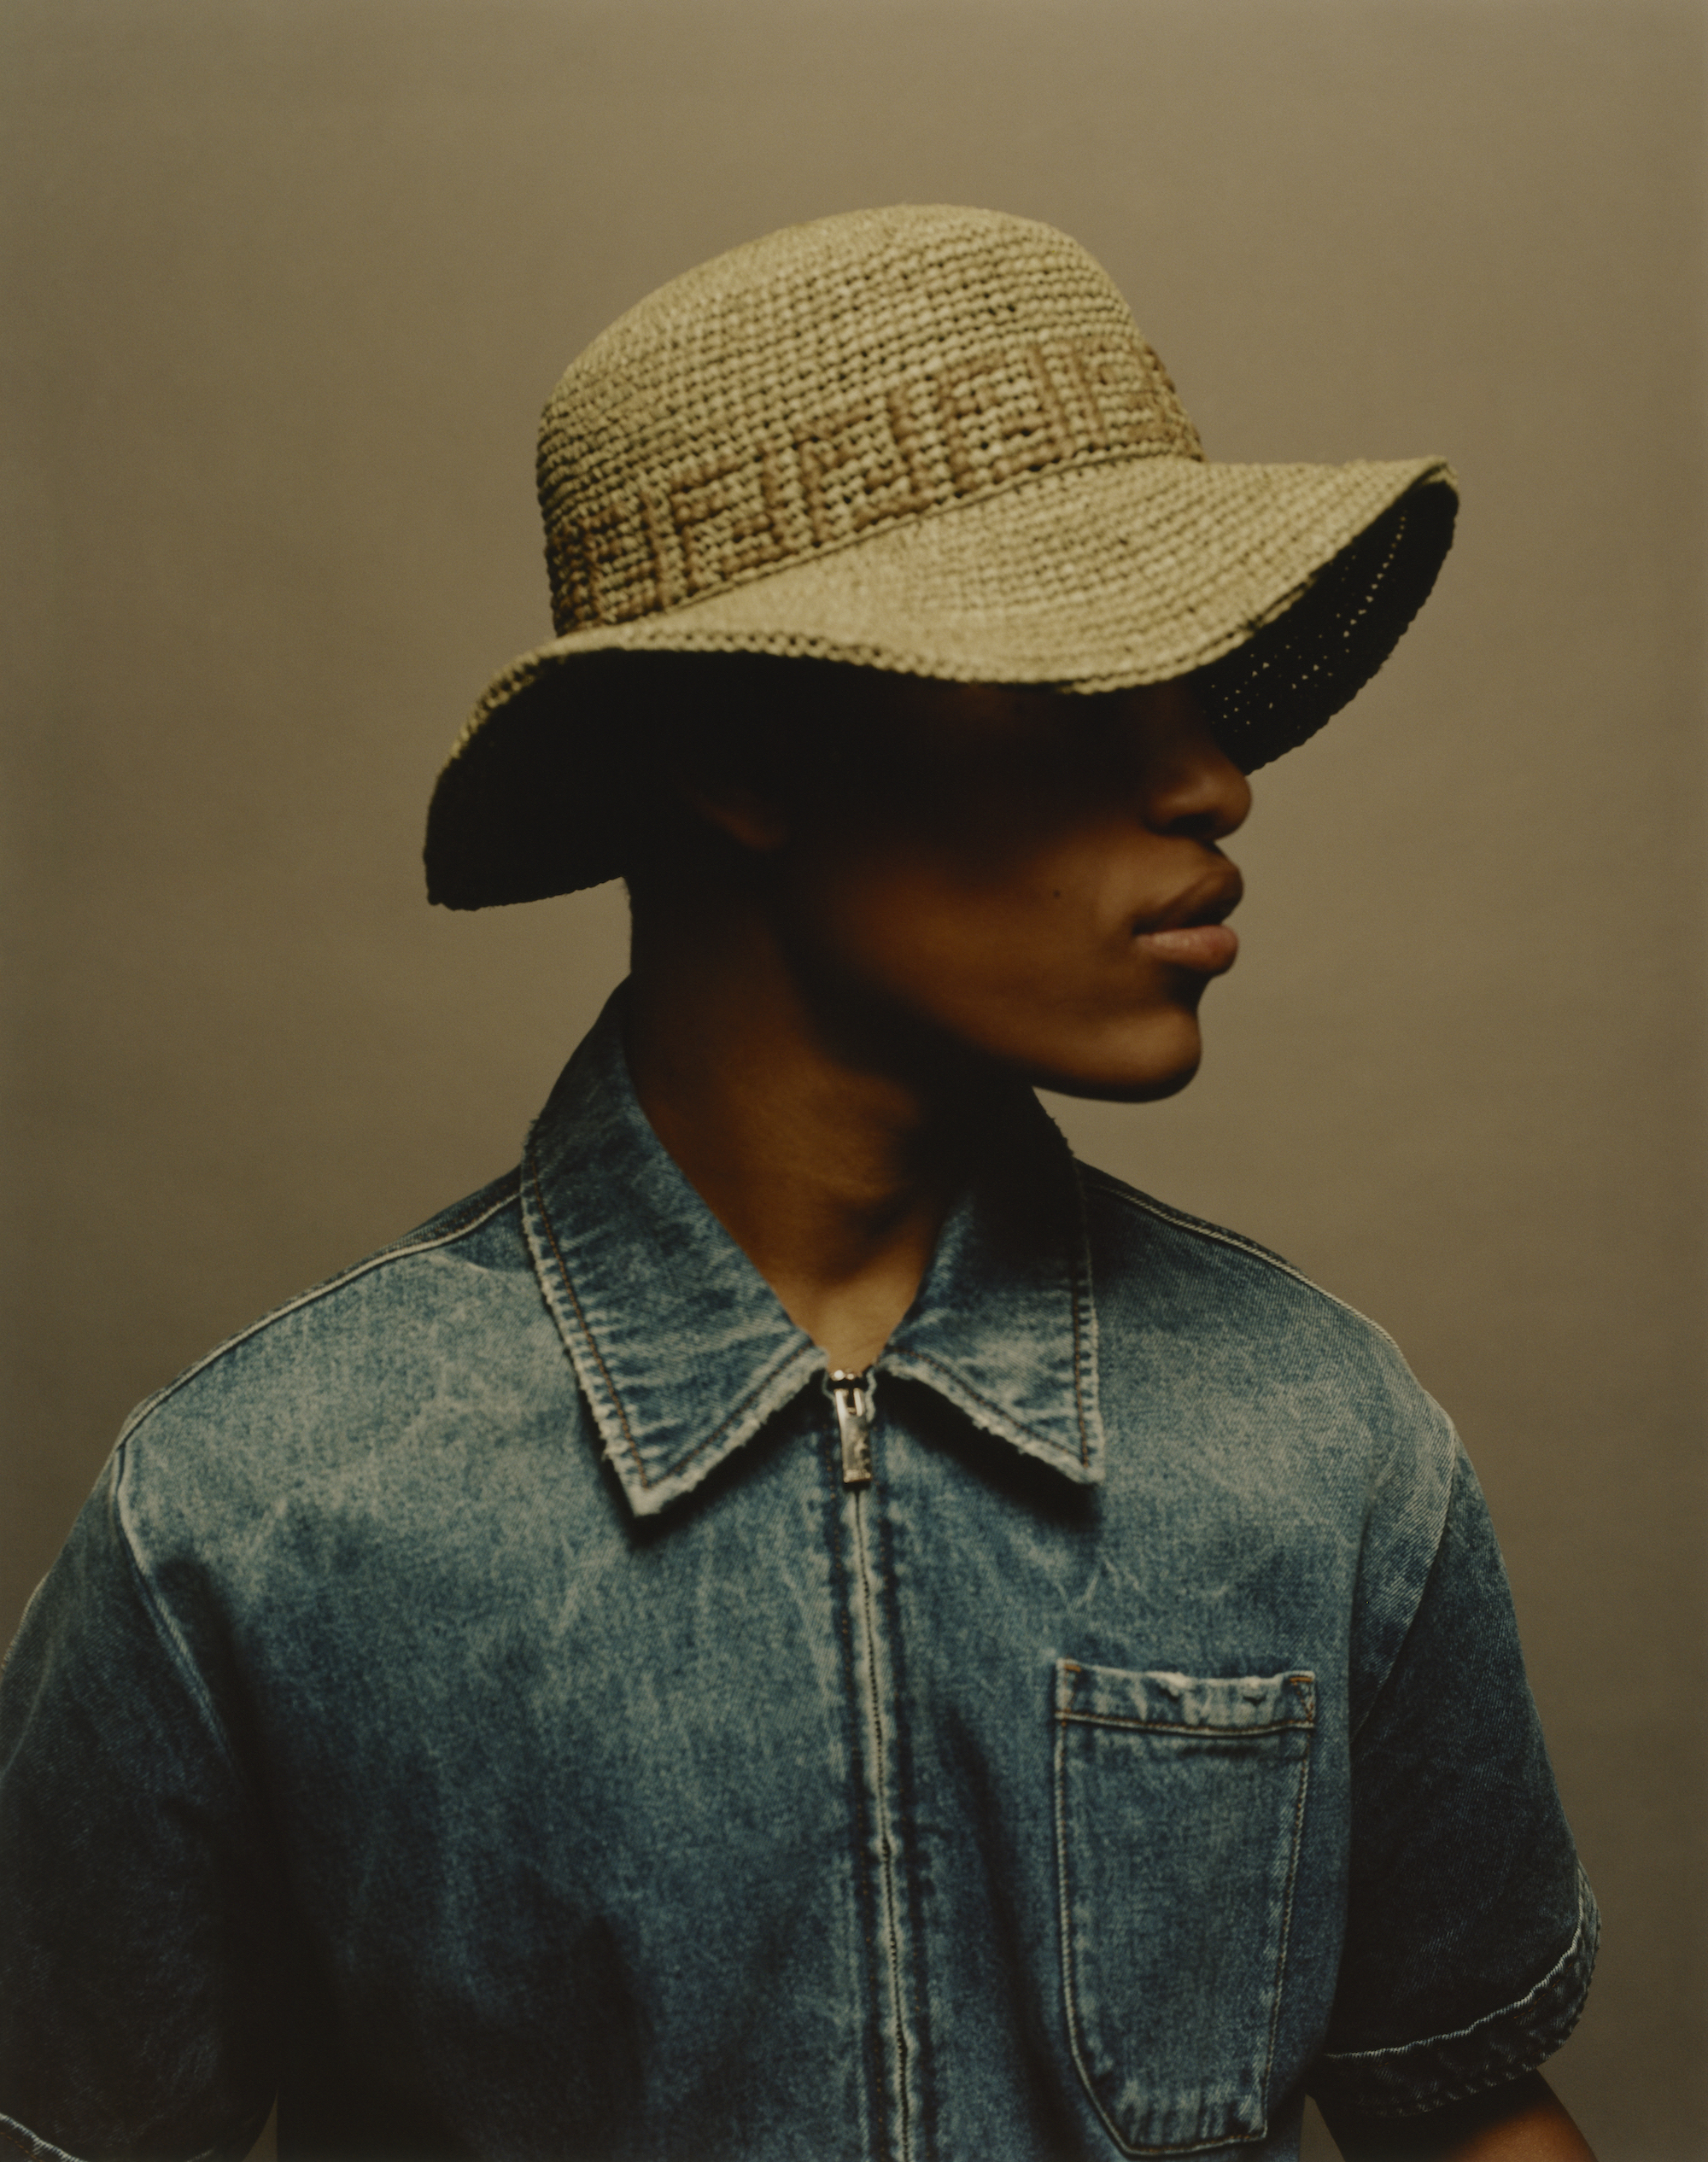 Fendi fashion editorial taken from out Spring issue model wears Fendi sunhat and denim shirt